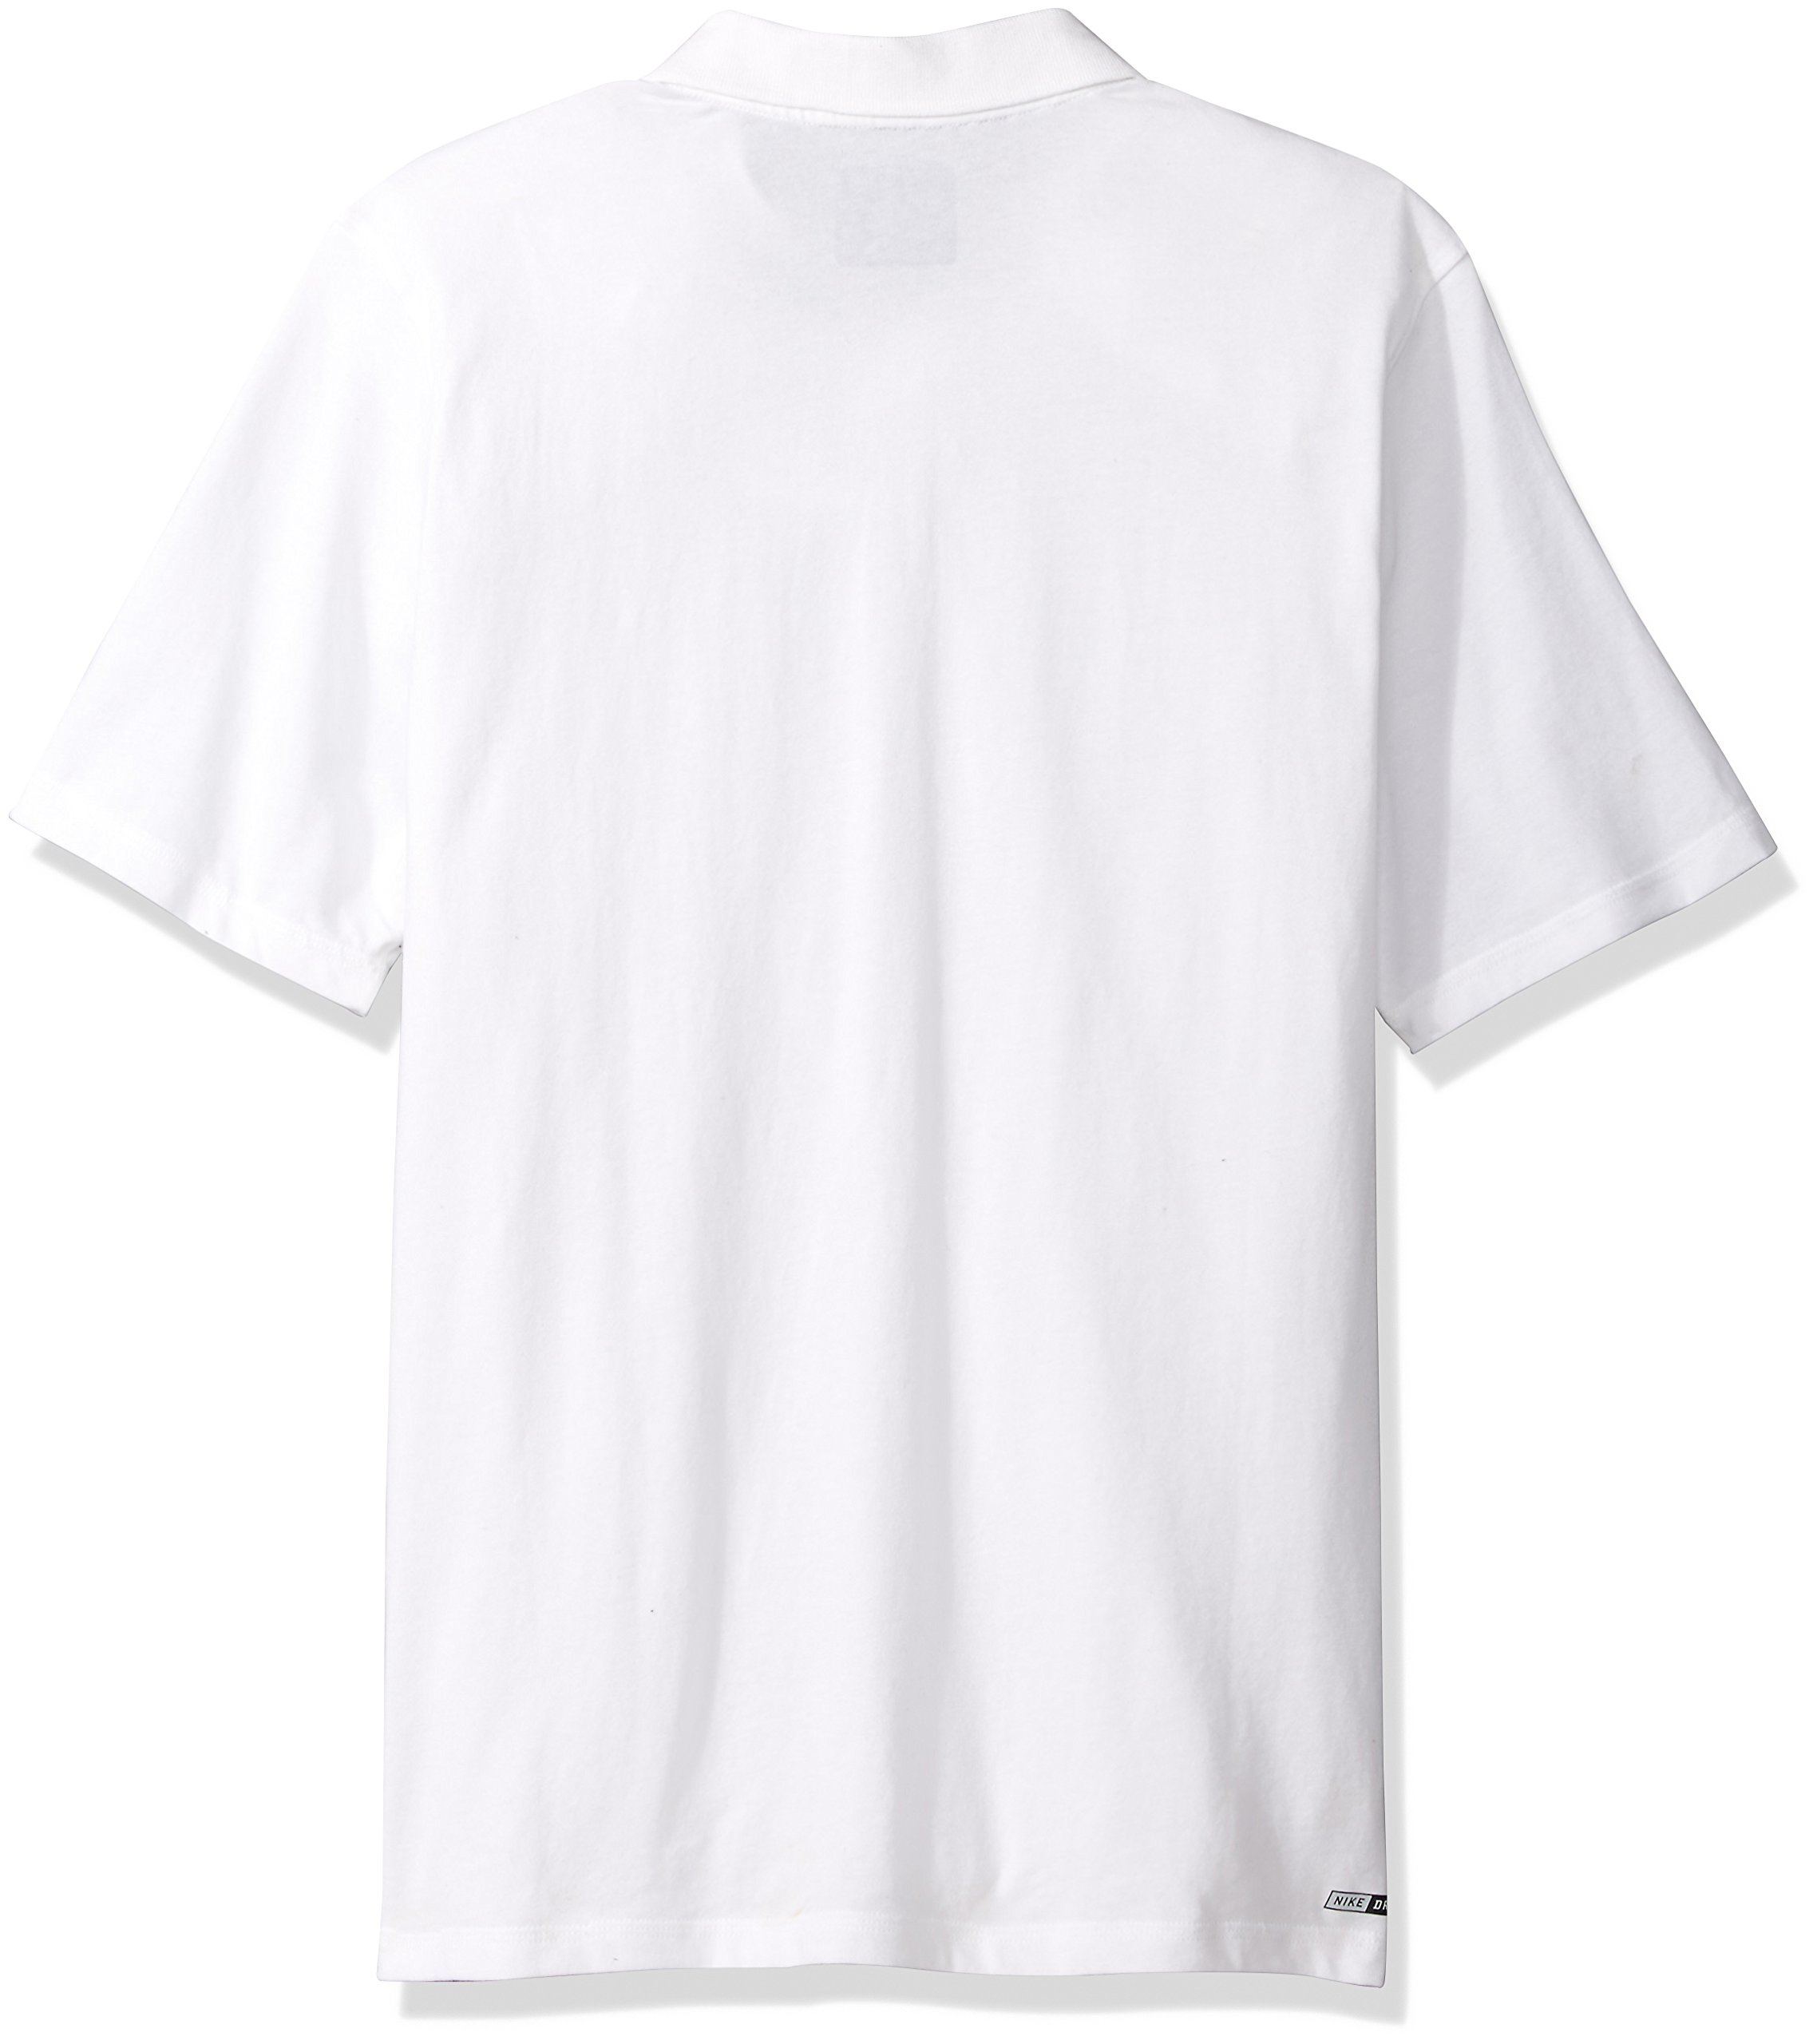 Hurley Men's Nike Dri-Fit Short Sleeve Lagos Polo, White, XL by Hurley (Image #2)